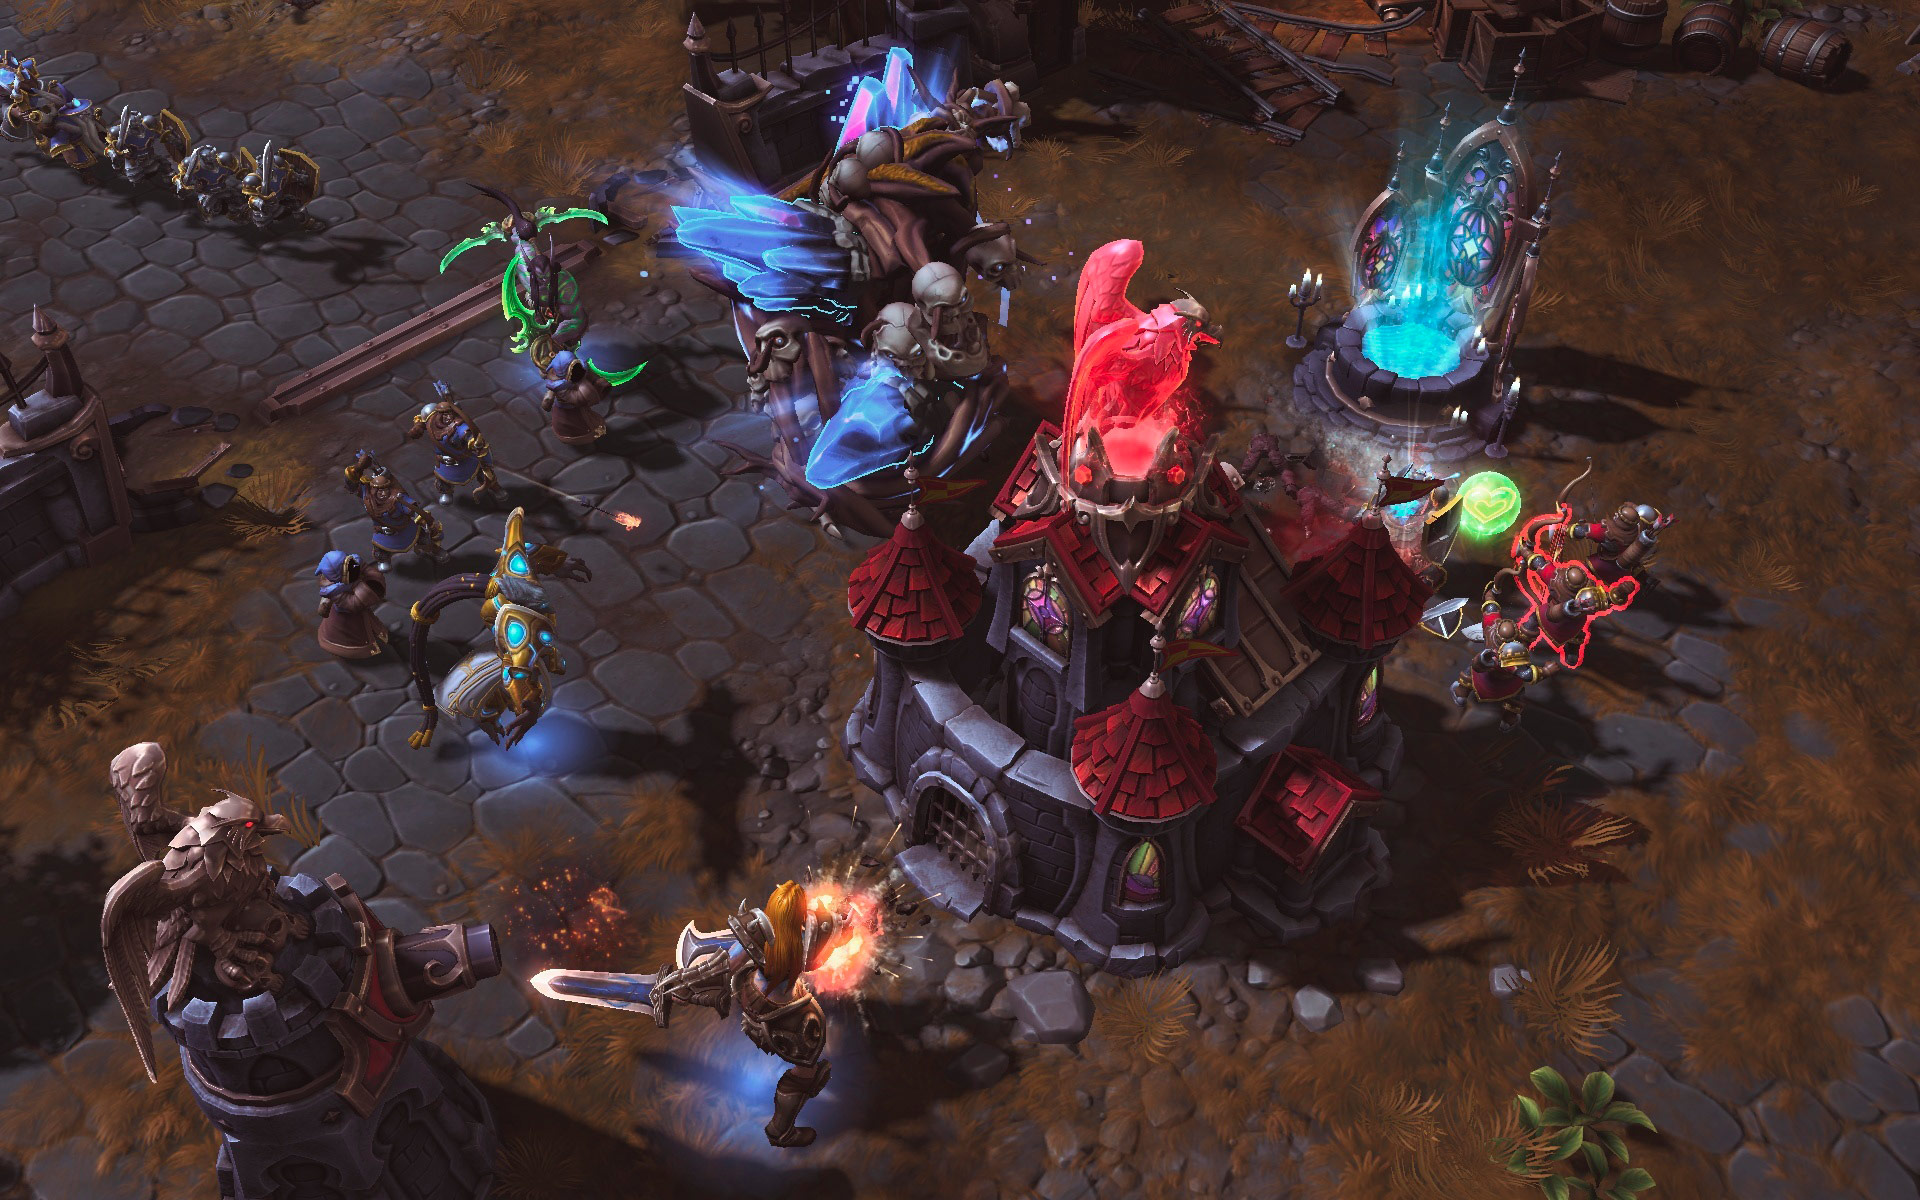 Heroes Of The Storm: Universes Collide In First Gameplay Trailer And Screenshots #29615